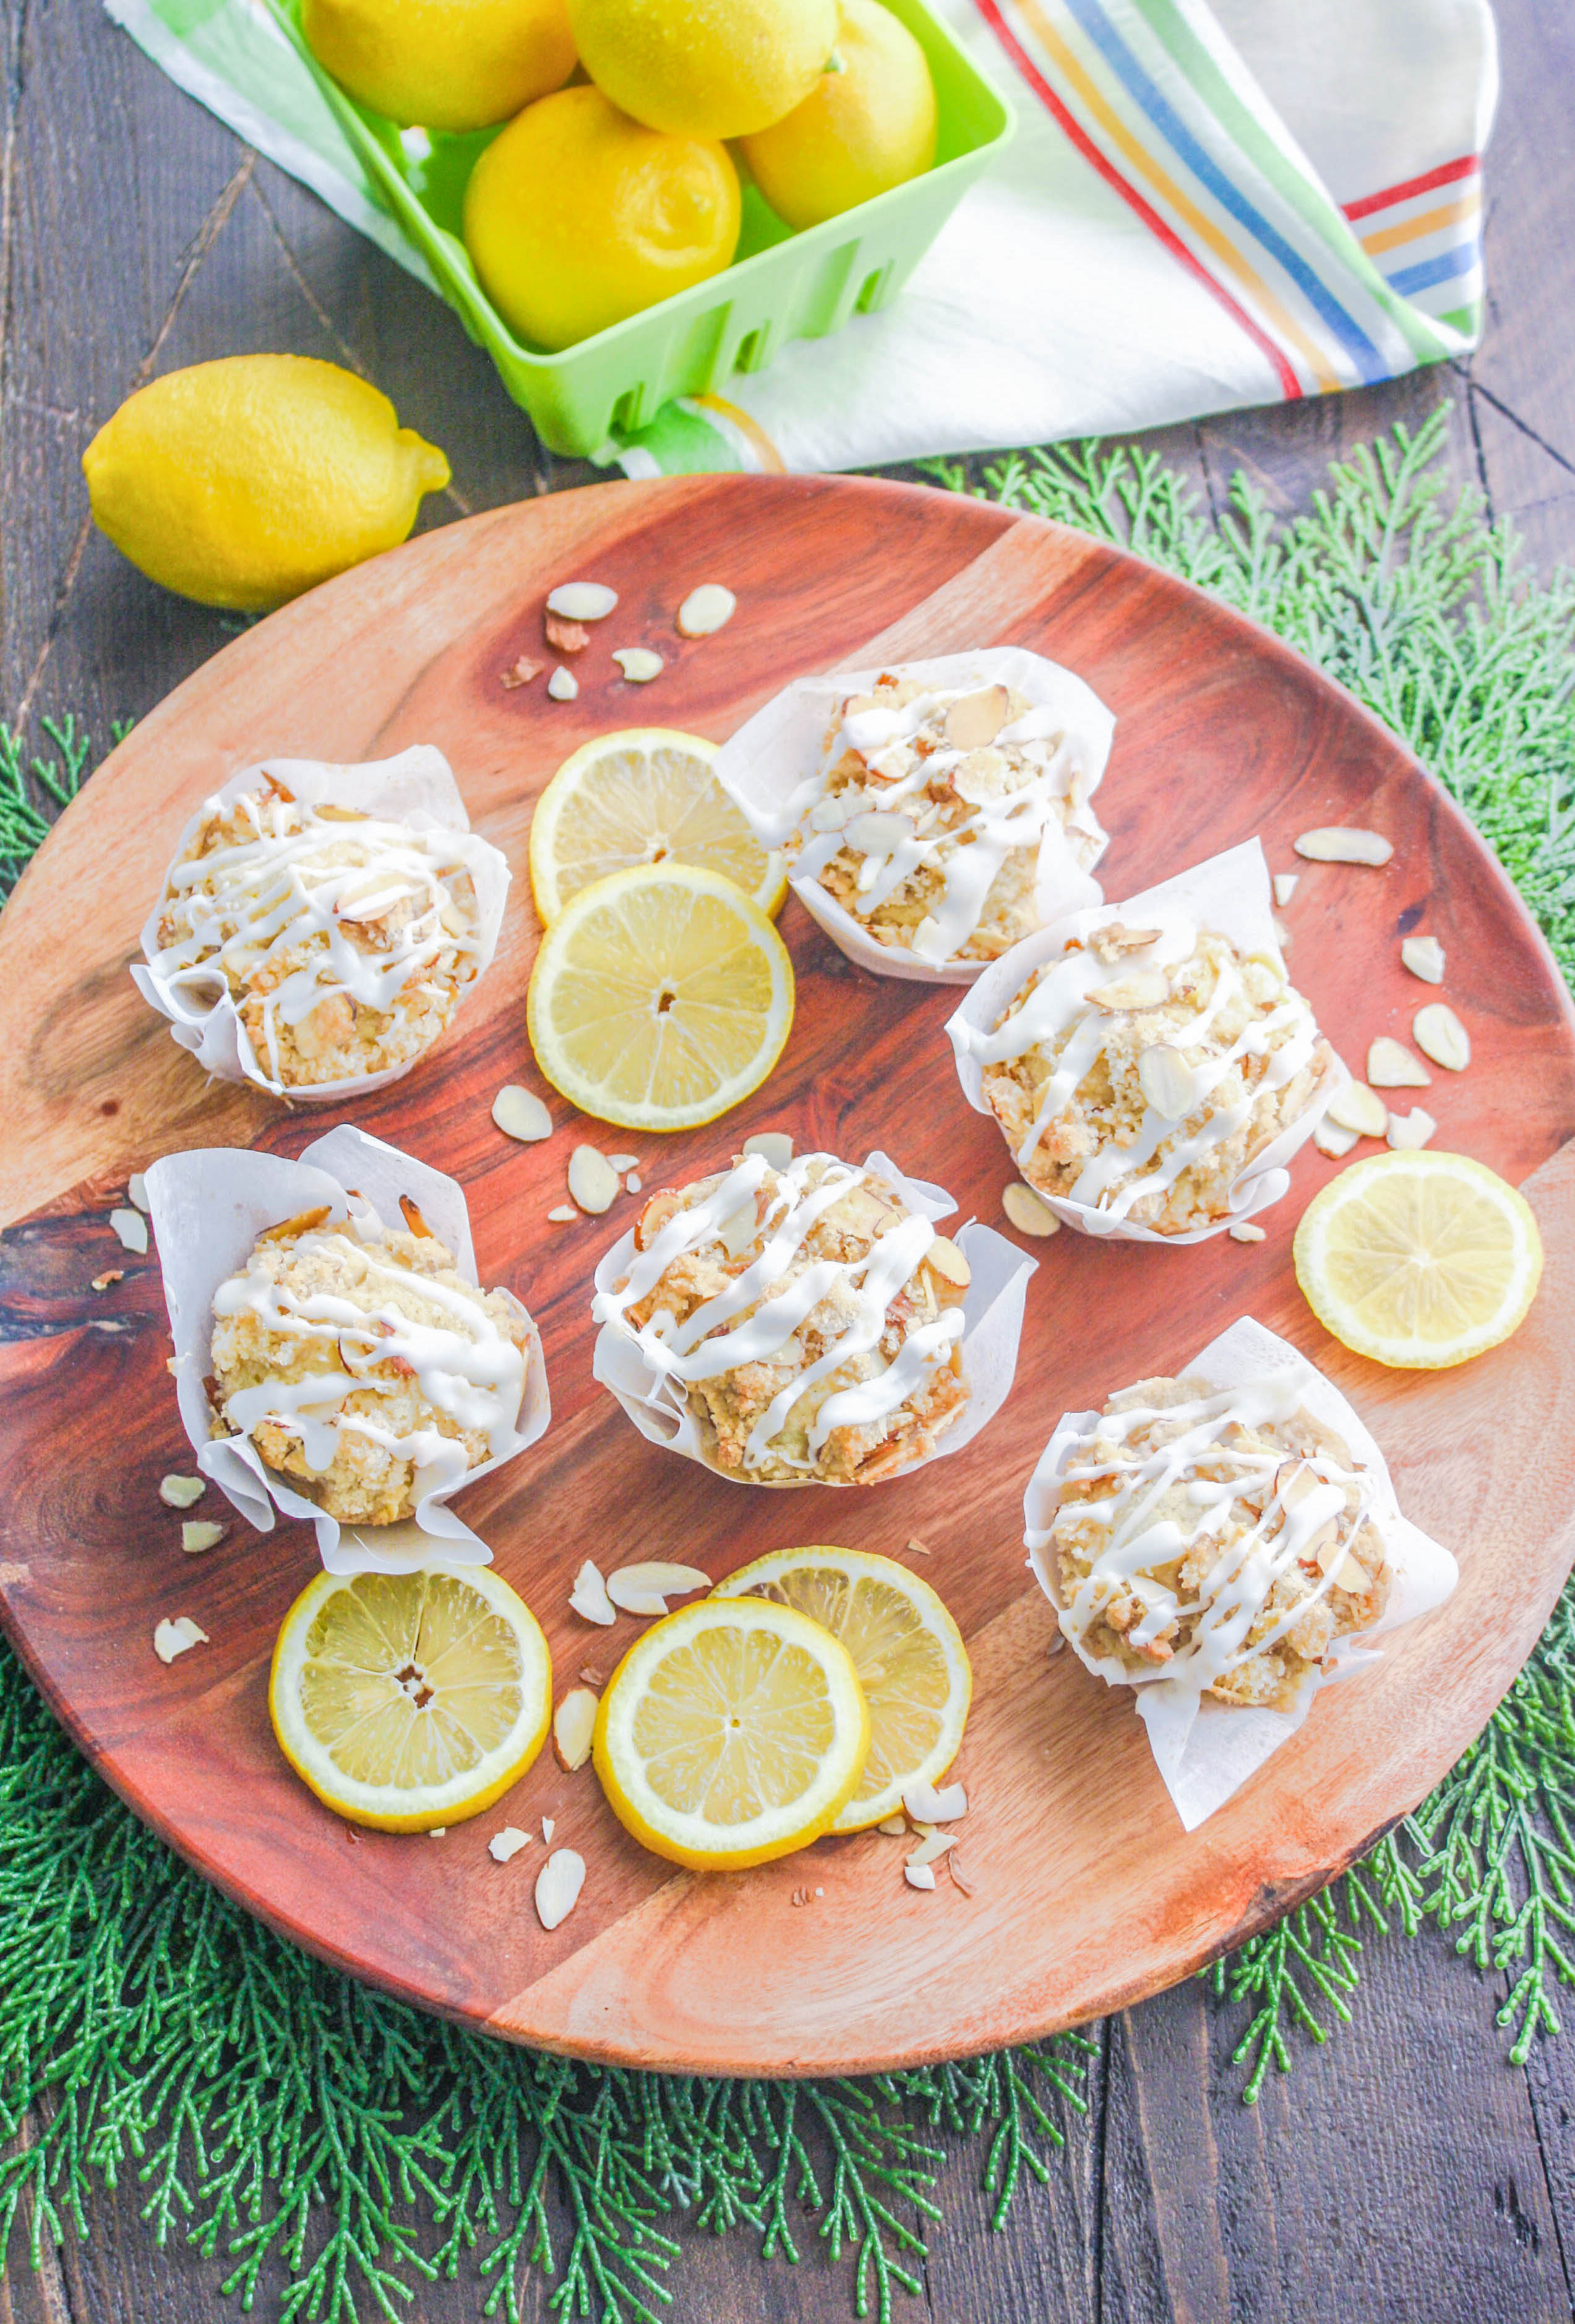 Lemon Muffins with Almond Streusel and Glaze are a treat in the a.m. You'll love lemon muffins any time of day or night!